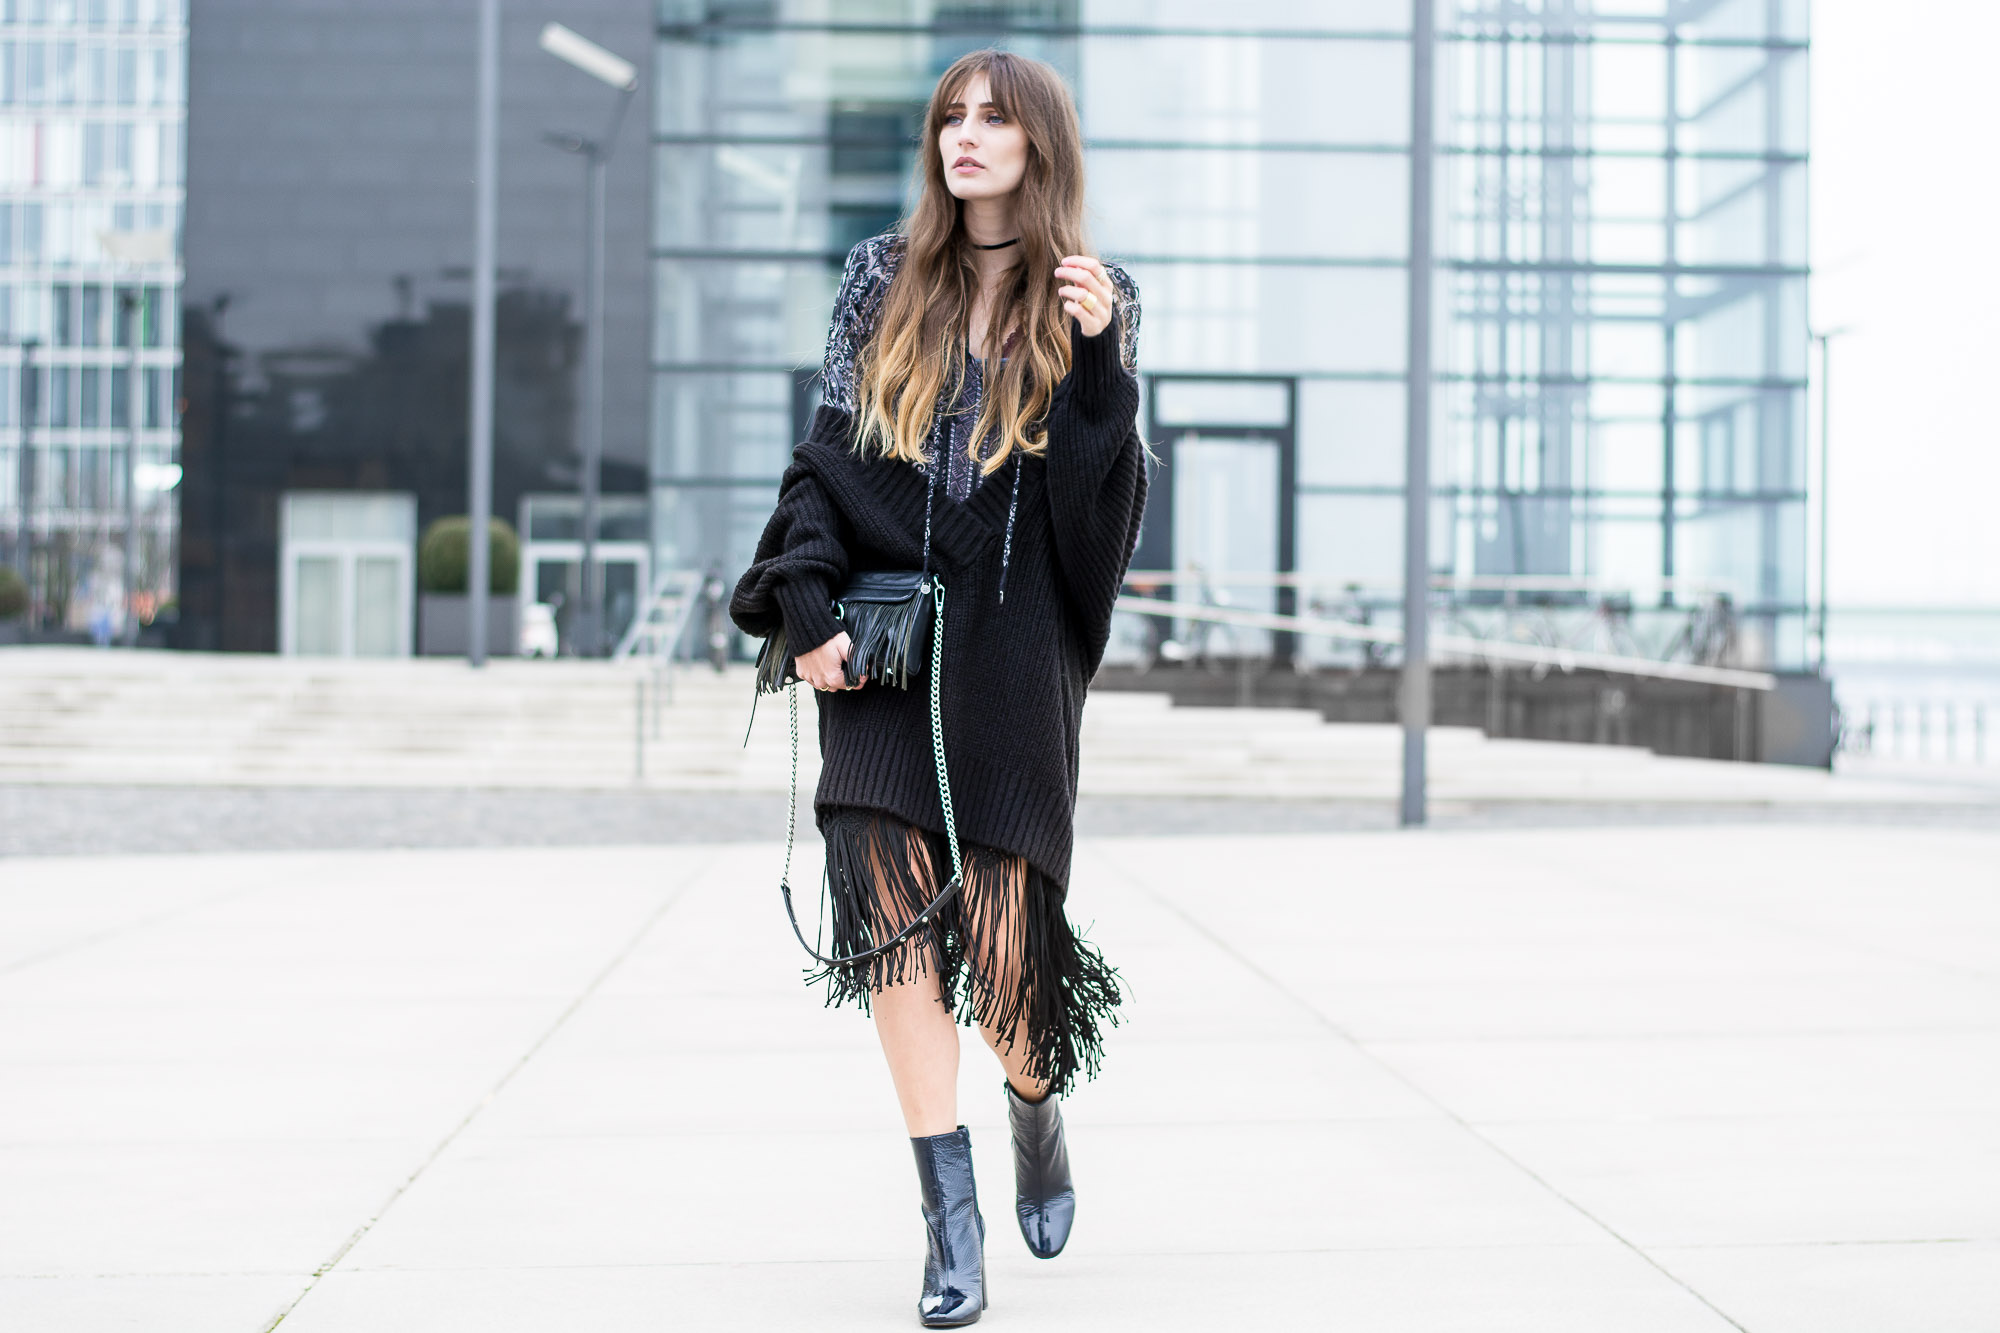 Odd Molly Fringe Dress & Buffalo Ankle Boots | Lisa Fiege